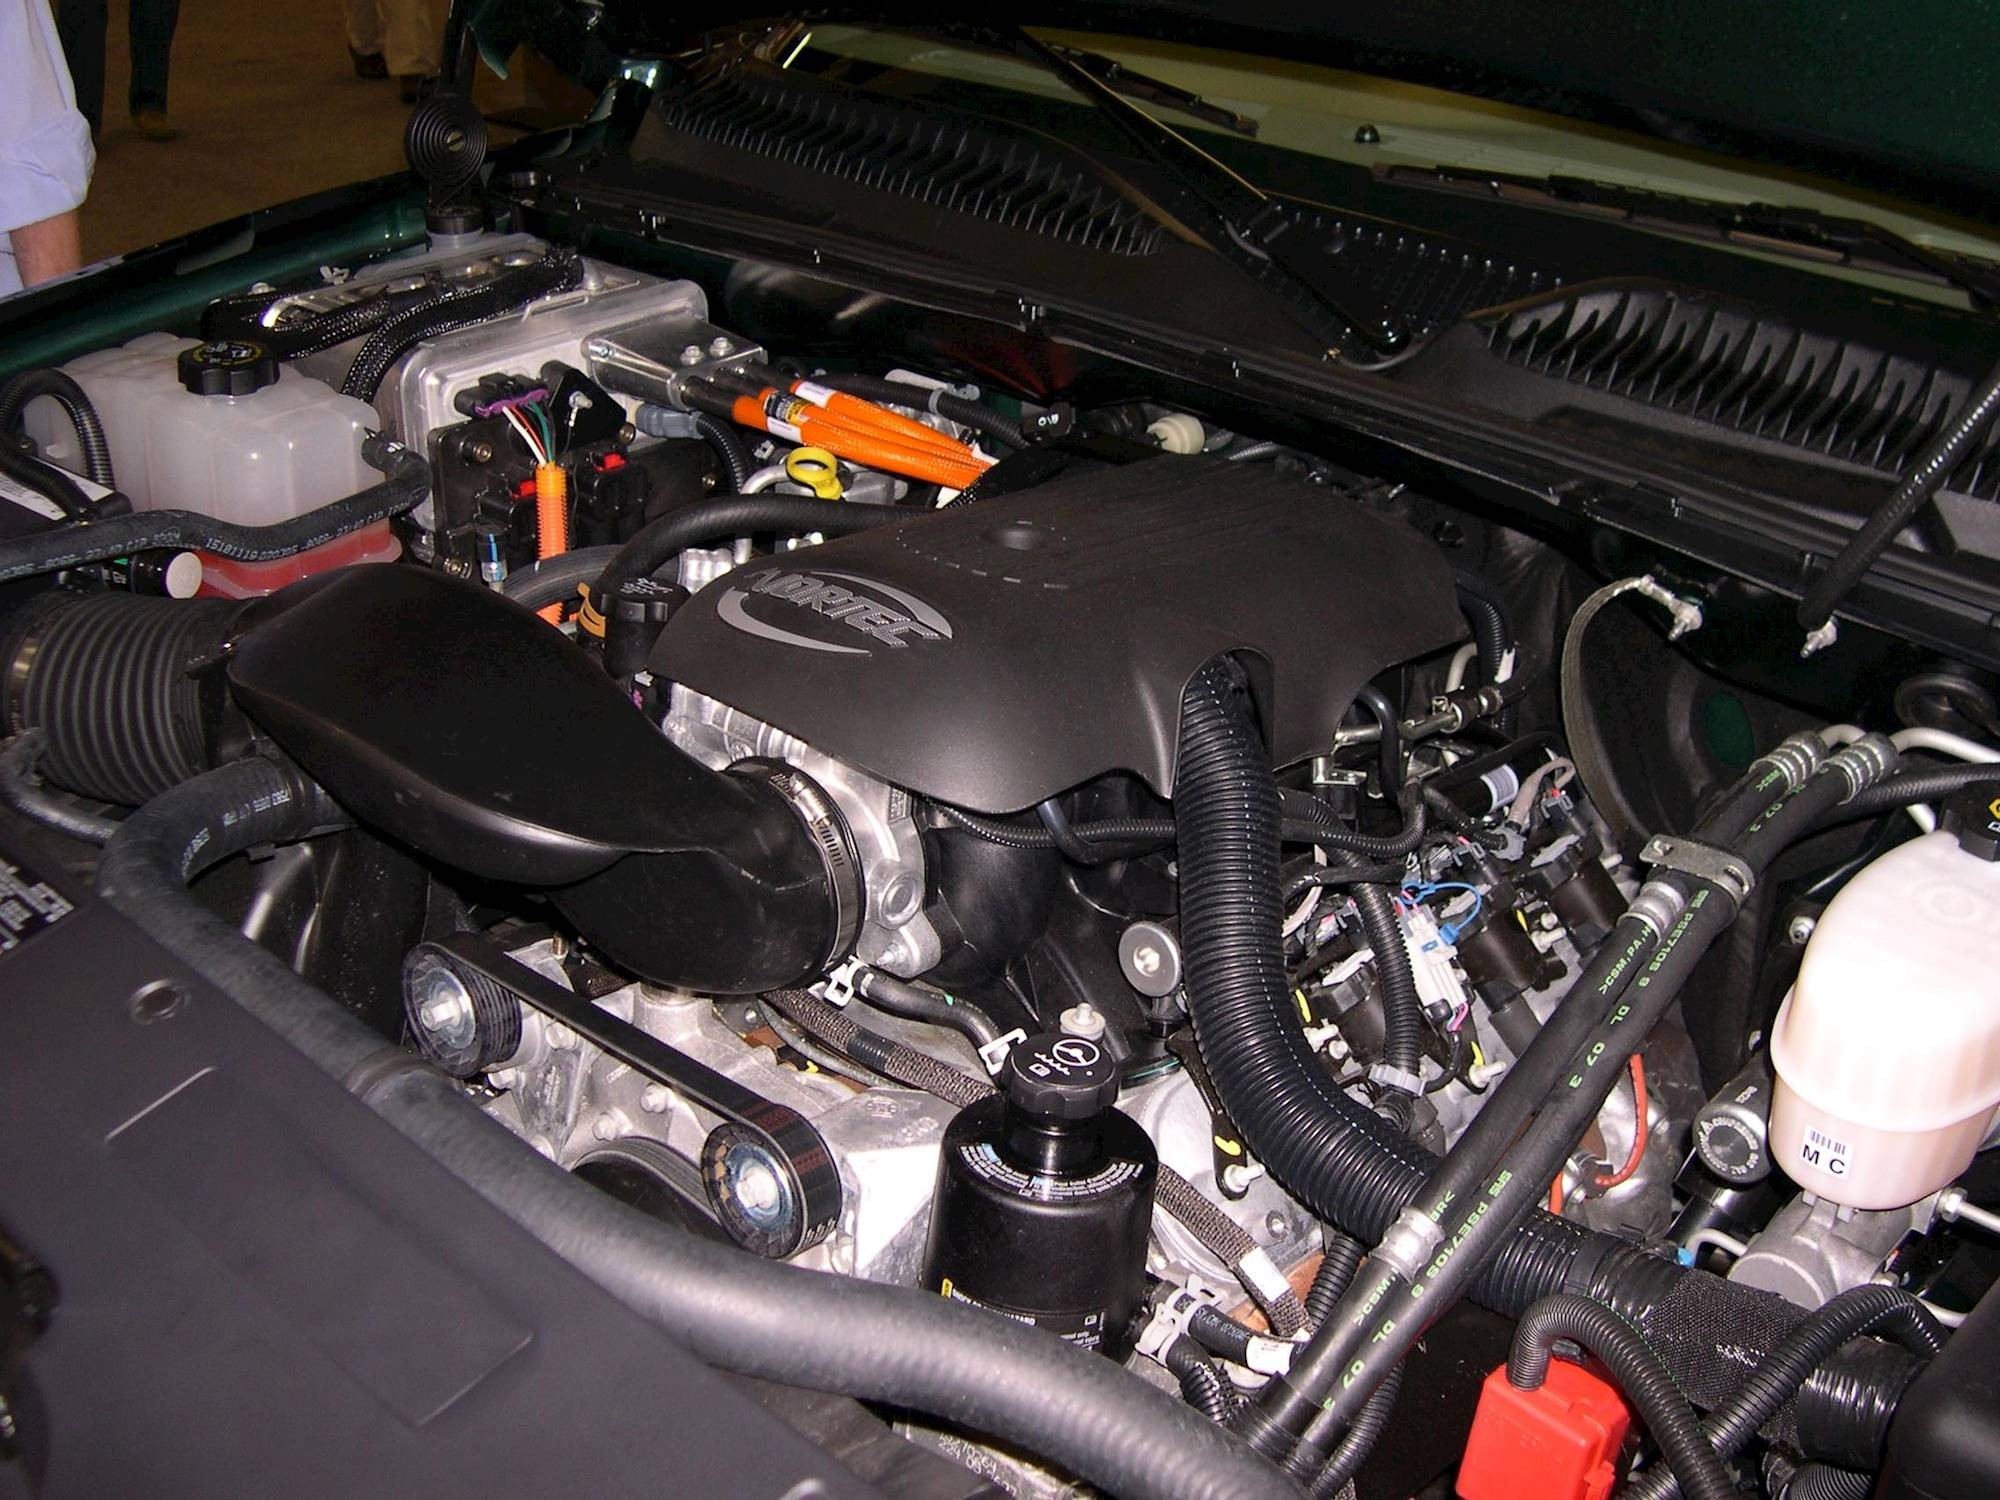 Diagram Of Under the Hood Of A Car 2013 Gmc Sierra 1500 Work Truck 4×2 Regular Cab 6 6 Ft Box Of Diagram Of Under the Hood Of A Car